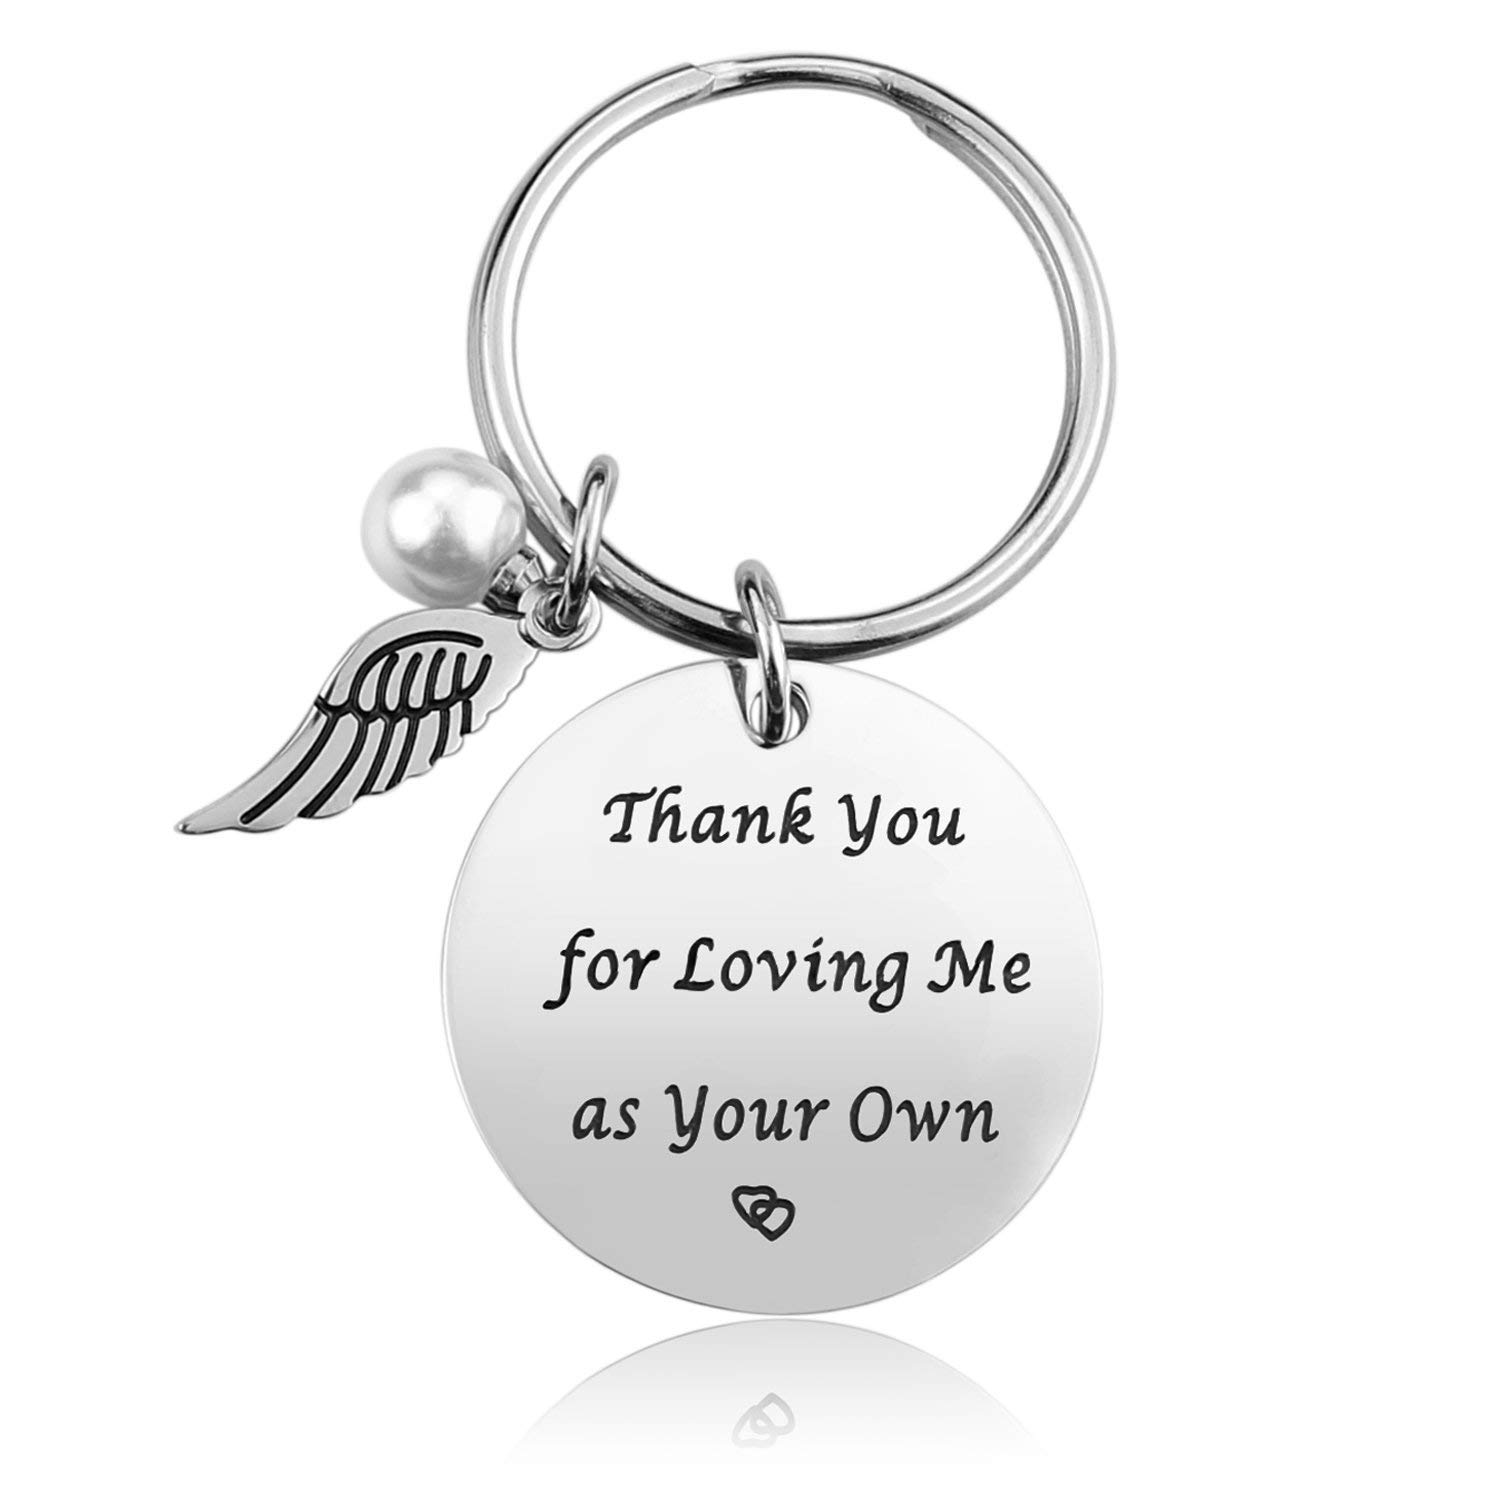 Step Mother Mom Keychain Gifts - Mom Gift idea for Mothers Day from Husband Daughter Son Kids, Stainless Steel Jewelry, with Gift Box, Birthday Gifts for Women Wife Christmas Valentines Gifts